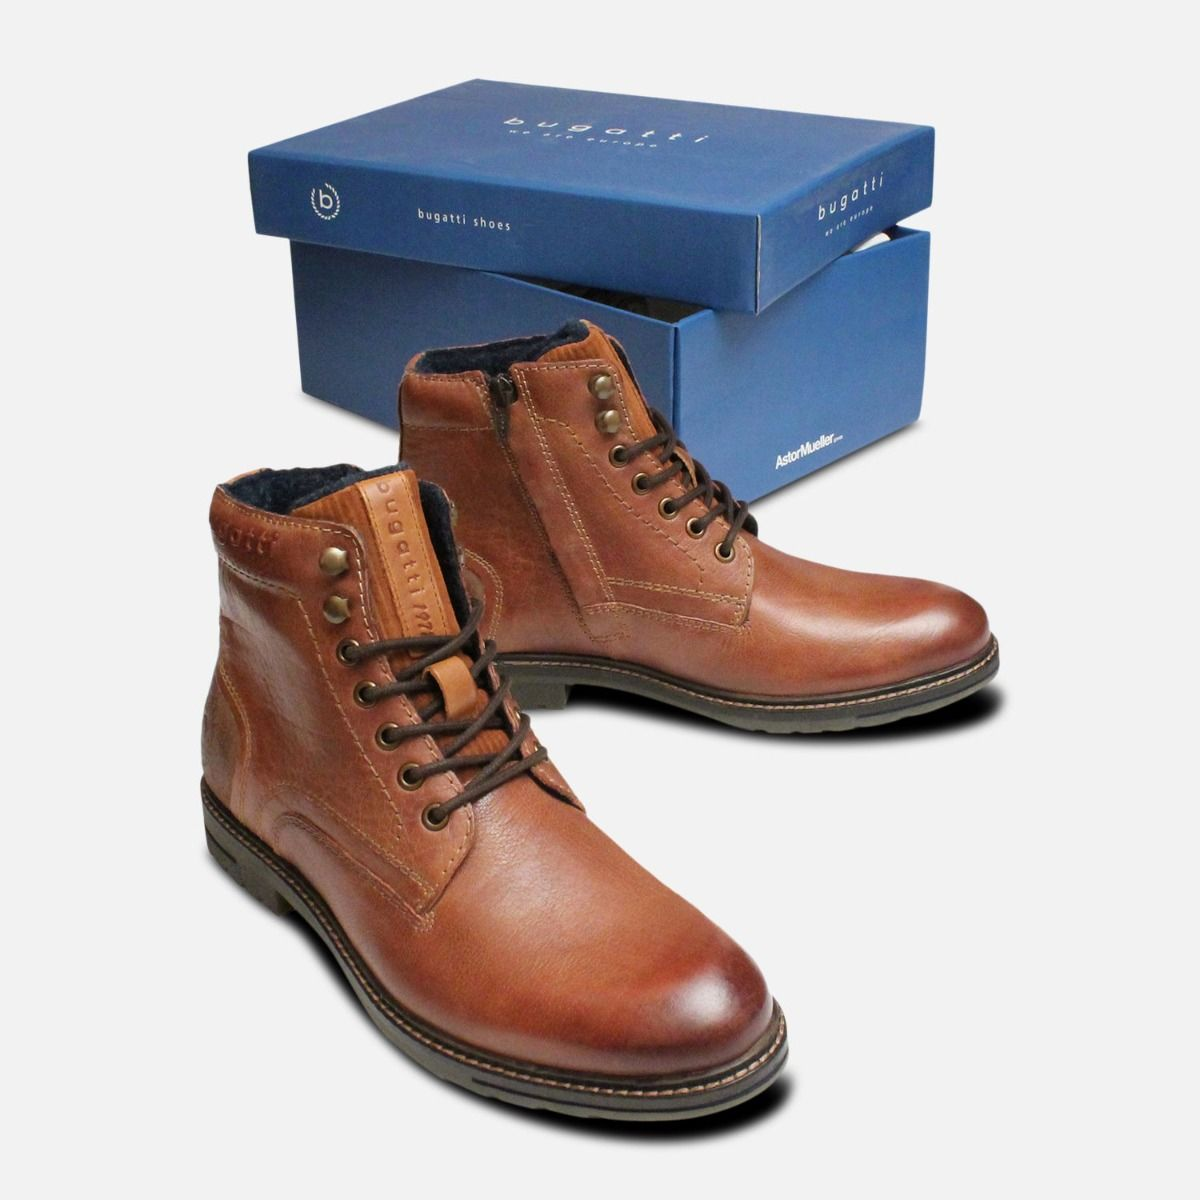 Commander Bugatti Warm Lined Mid Boots in Brown